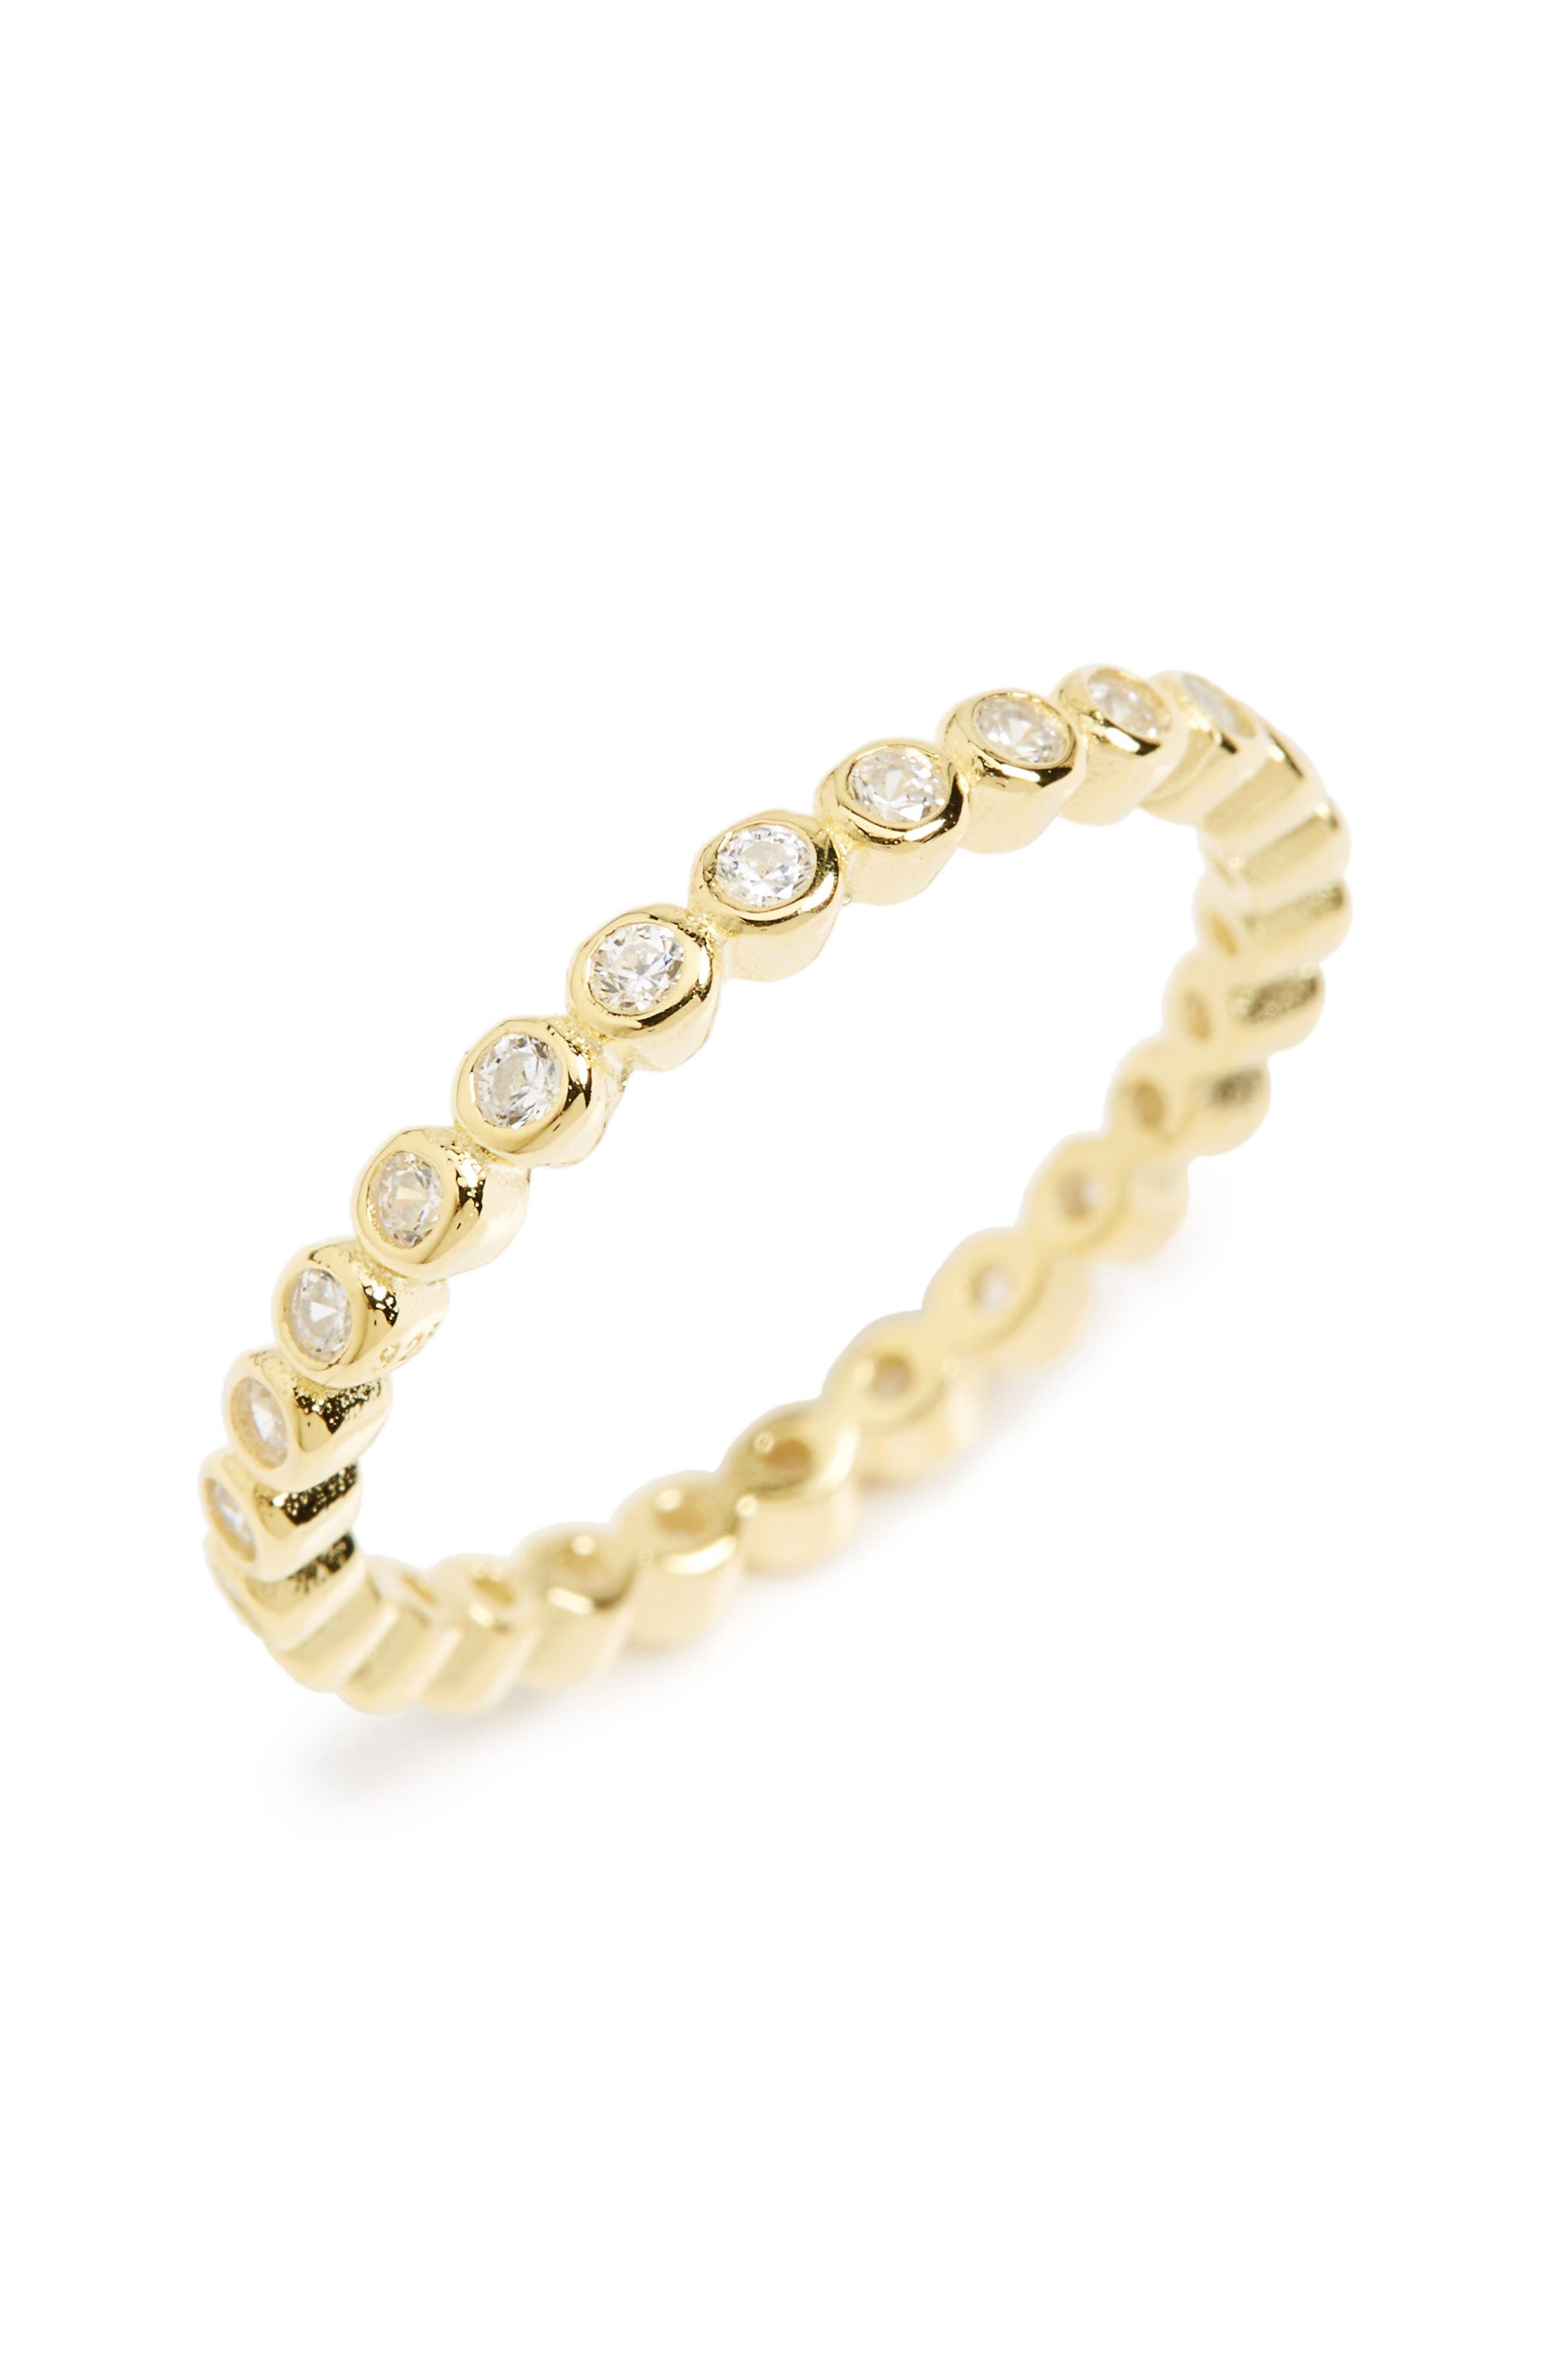 KAREN LONDON Yes Please Infinity Eternity Band Ring